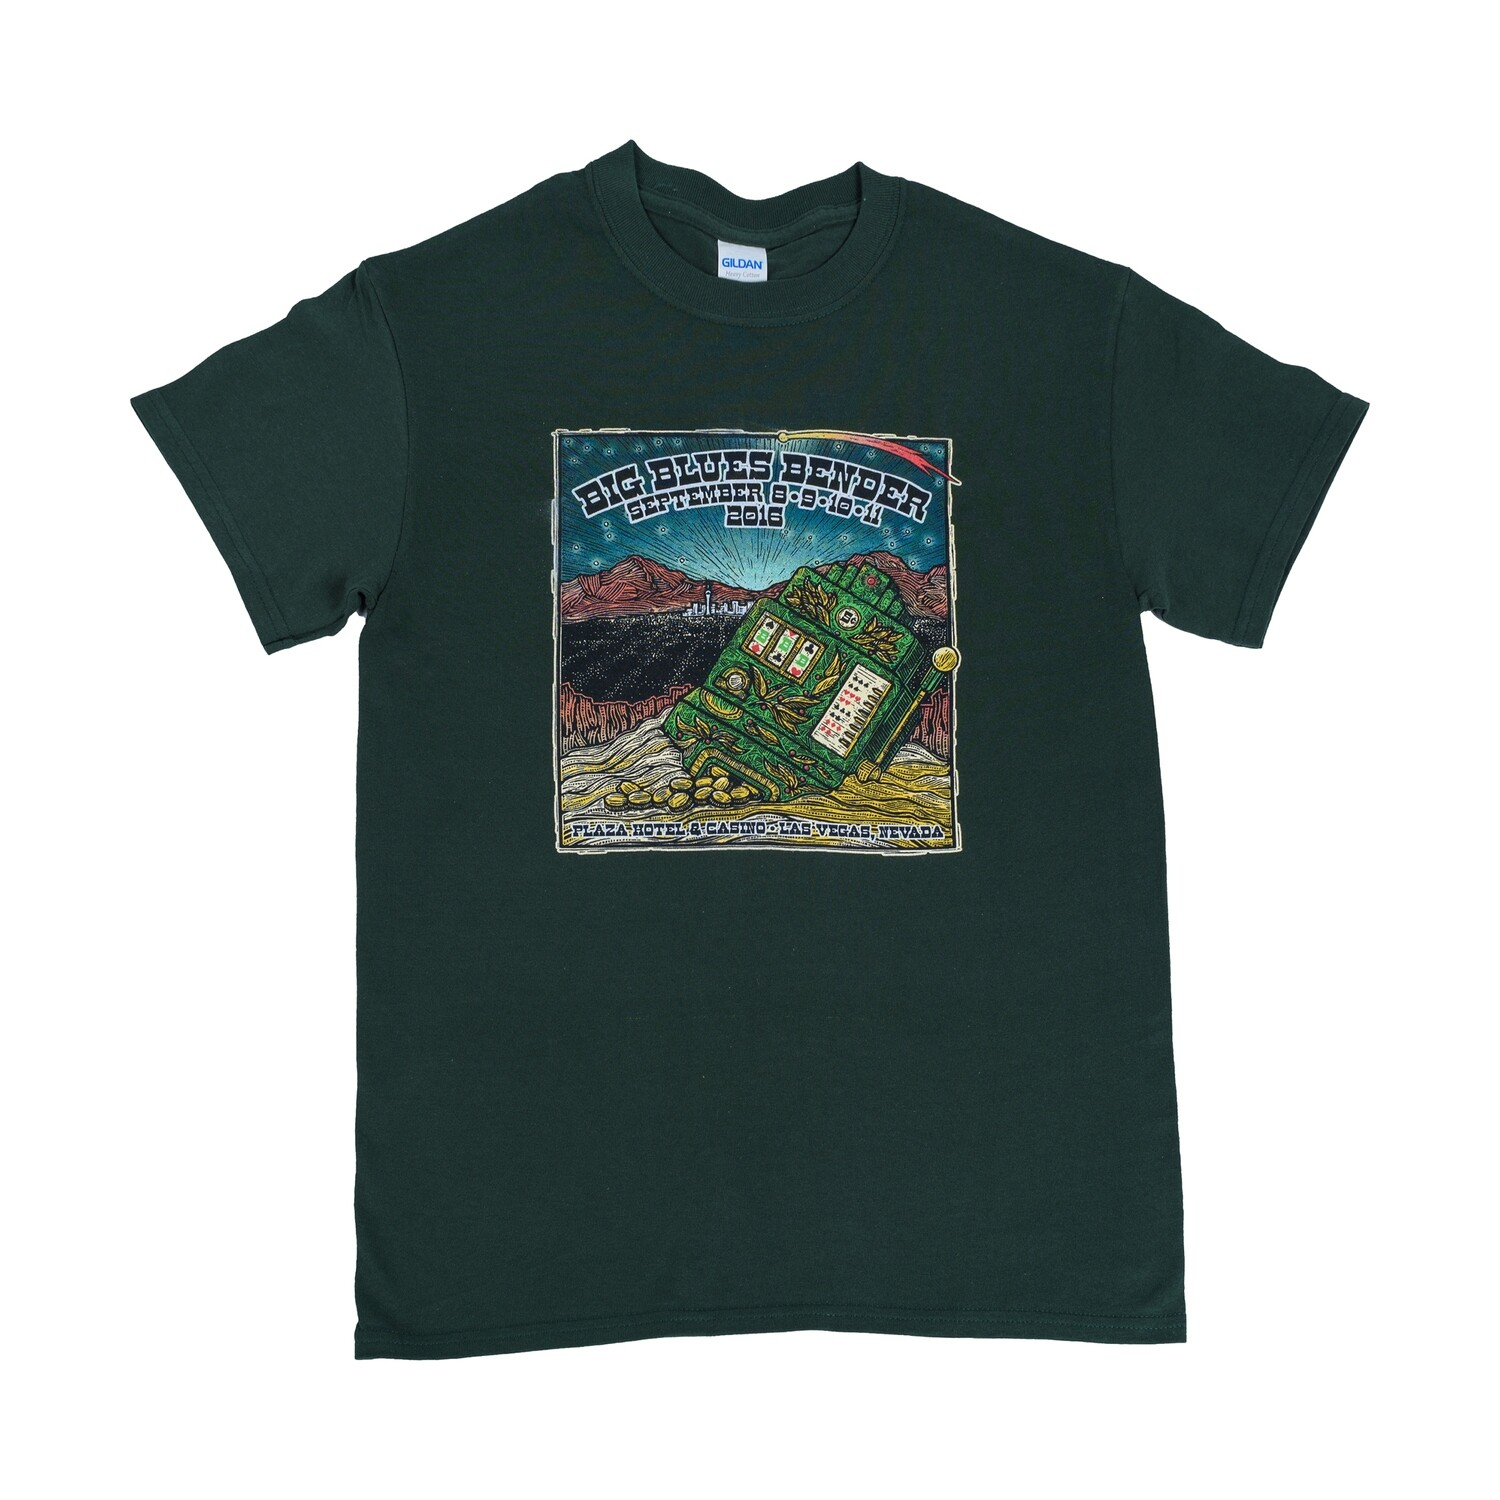 2016 Poster Image T-Shirt, Hunter Green